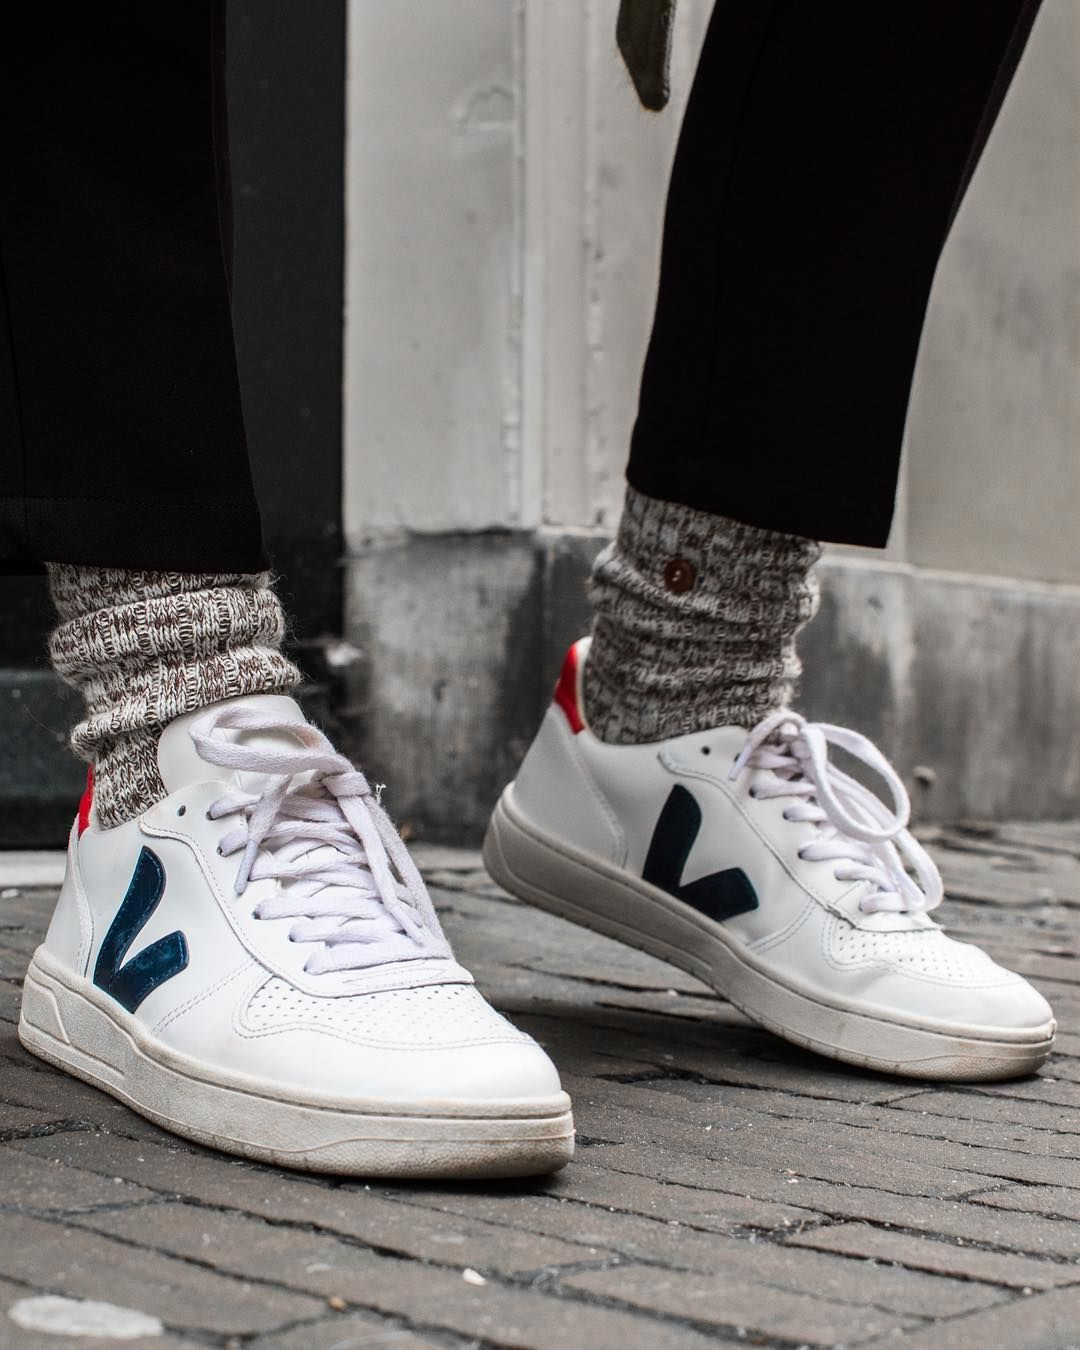 nostalgia No haga cuadrado  Basic can't be wrong - Our v-10 Tricolor are available on veja.store #veja  #vejashoes #vejav10 #kicksofth… | Sneakers outfit men, Sneakers men  fashion, Veja shoes